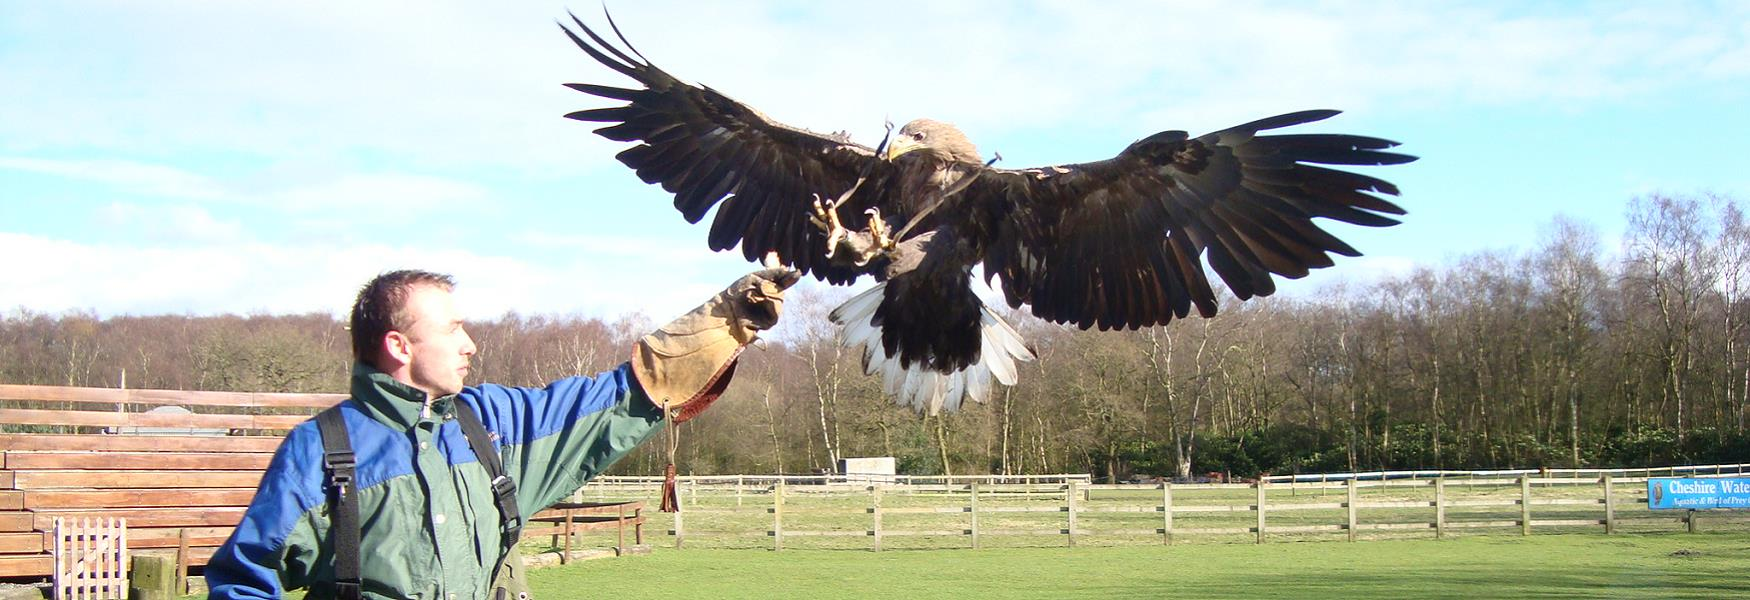 Falconry in Cheshire